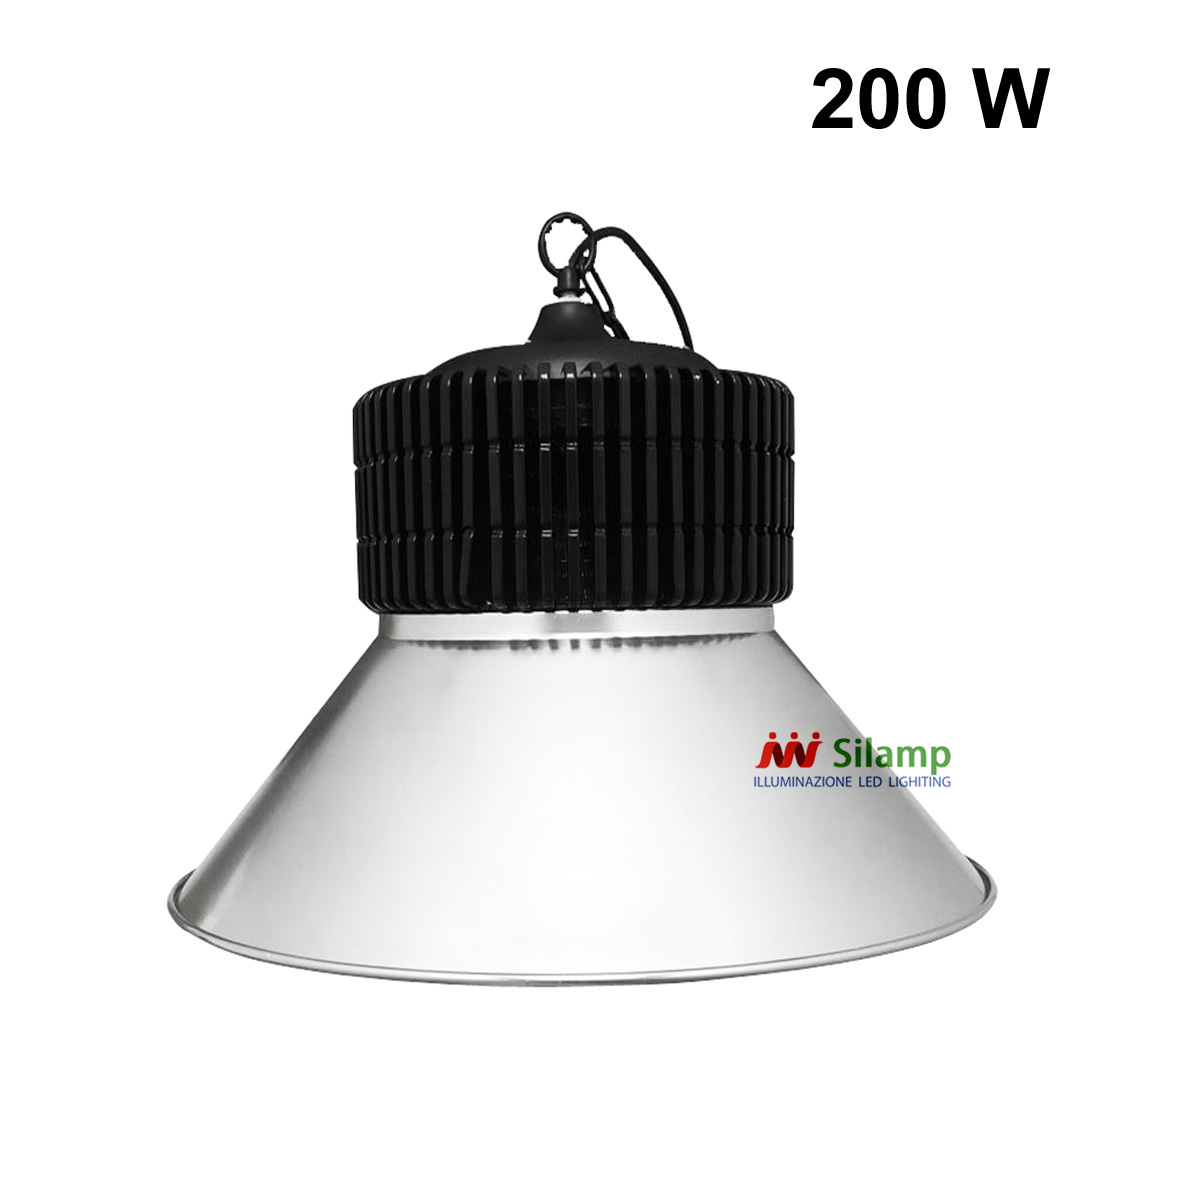 Phare Projecteur Industriel LED 200w couvercle, en forme de cloche, d'ARGENT led